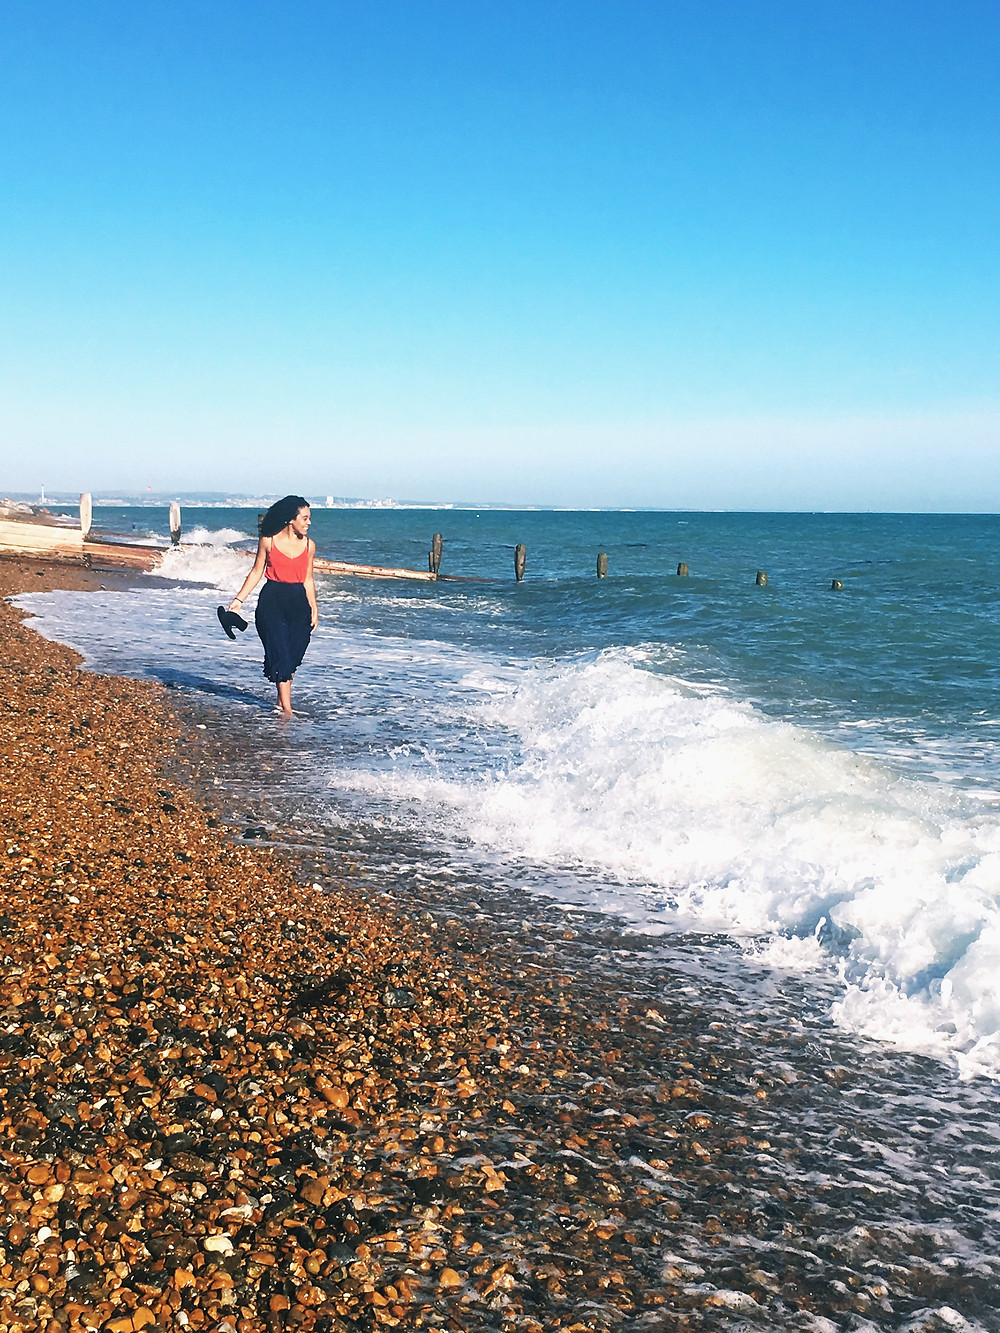 Kay Ali by the coast. Hormone and mental health expert and co founder of You Need A Nutritional Therapist. Kay Ali discusses how being in nature supports health and wellbeing.